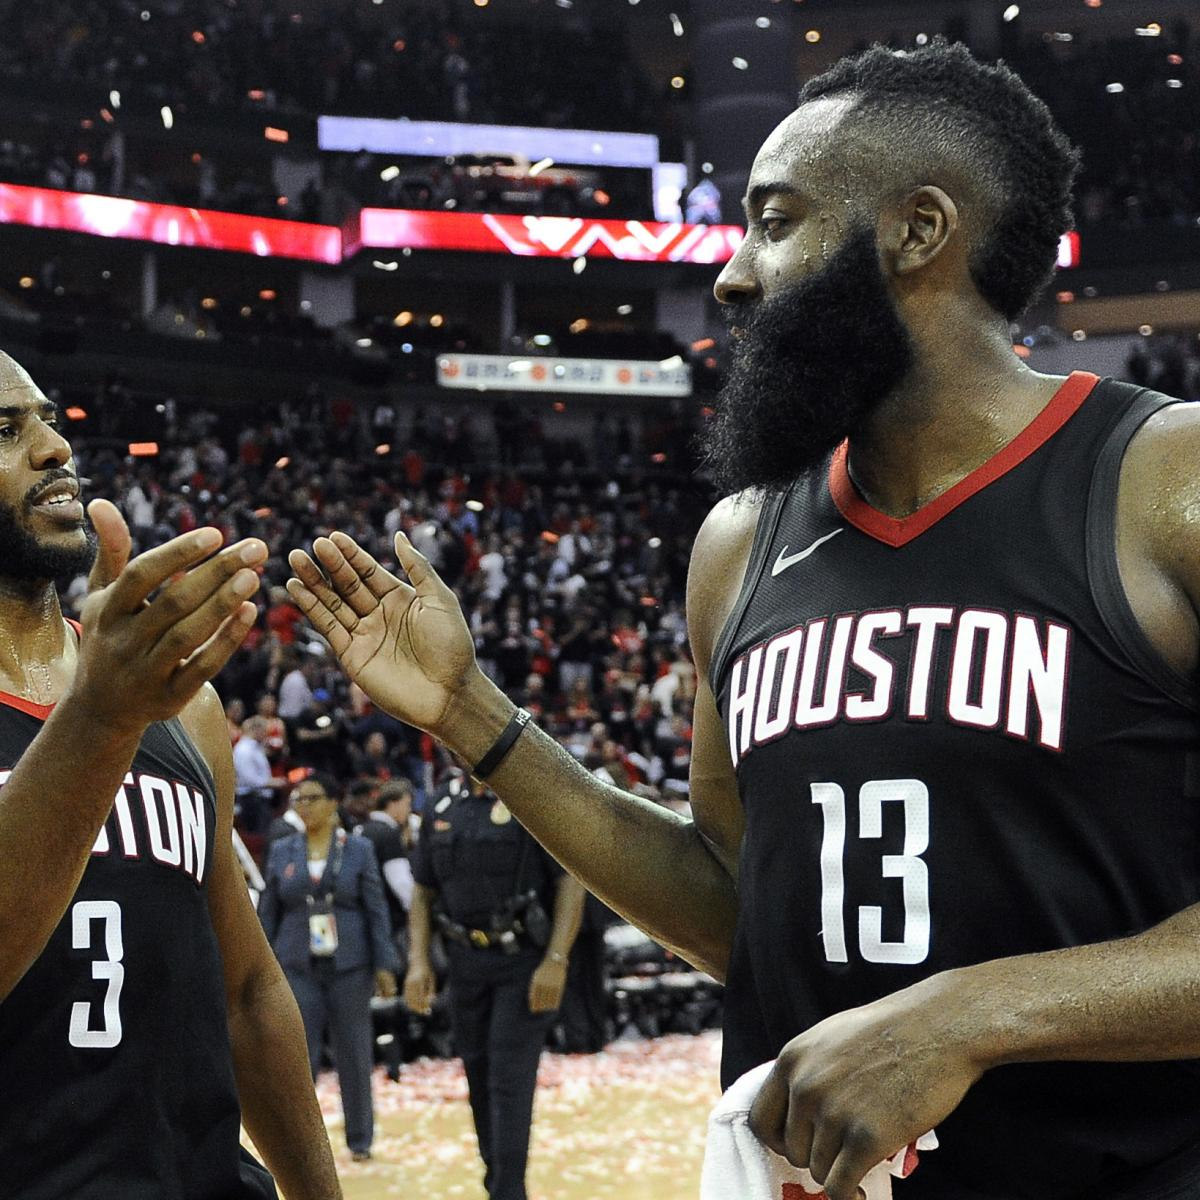 Rockets Vs Warriors Twitter Reaction: Rockets Vs. Warriors' Average Ticket Price Highest Ever